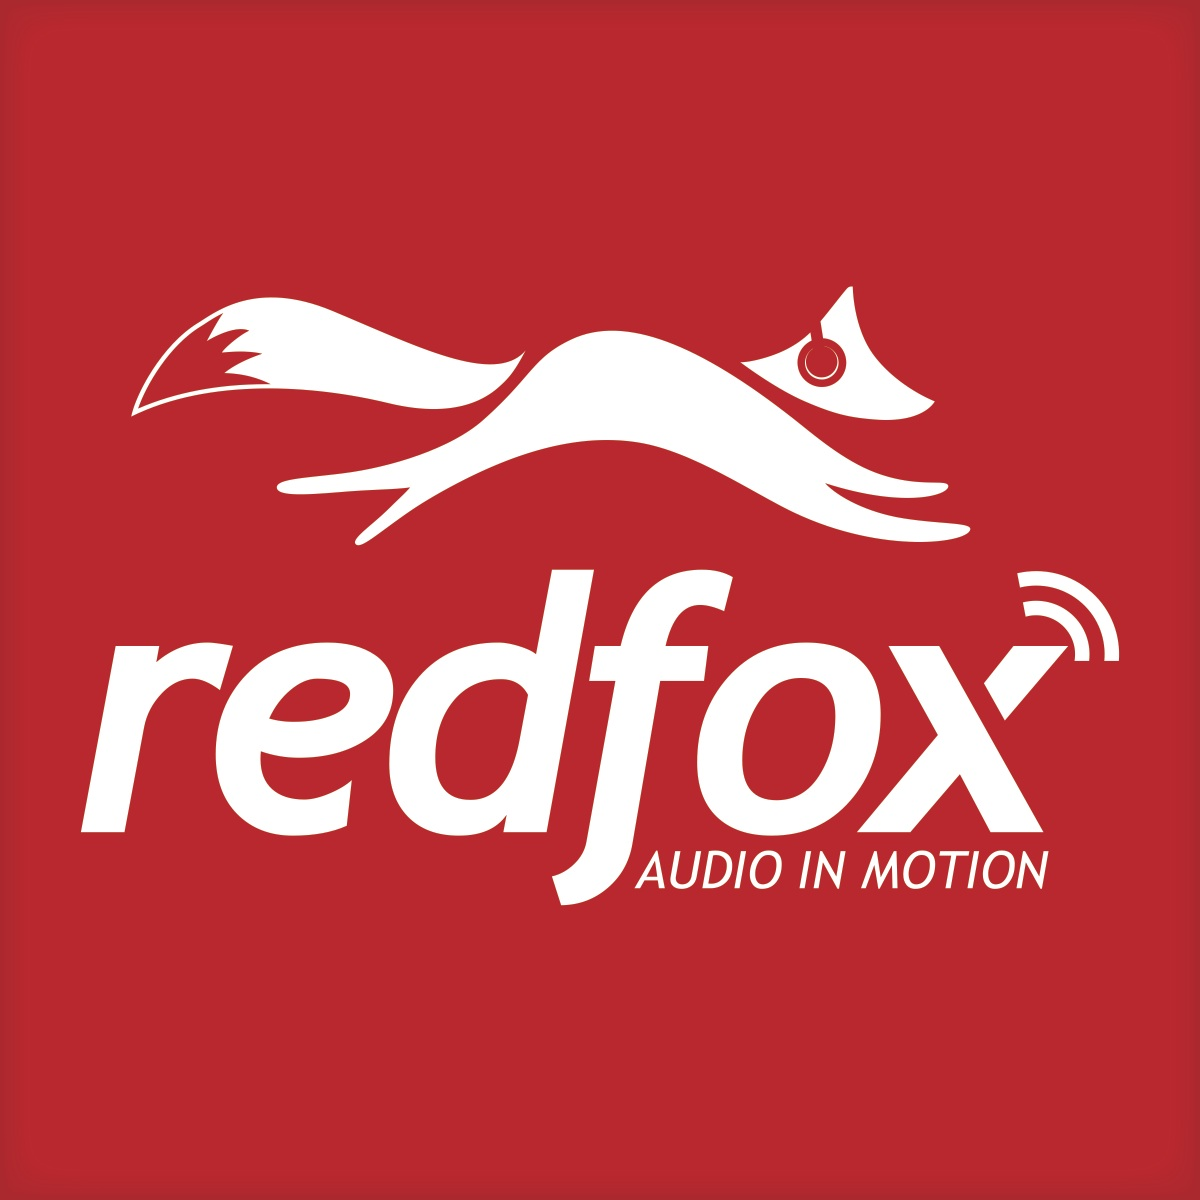 Red Fox Wireless Renews with Destination Races as the Official Headphone Sponsor for the 2015 and 2016 Wine Country Half Marathon Series